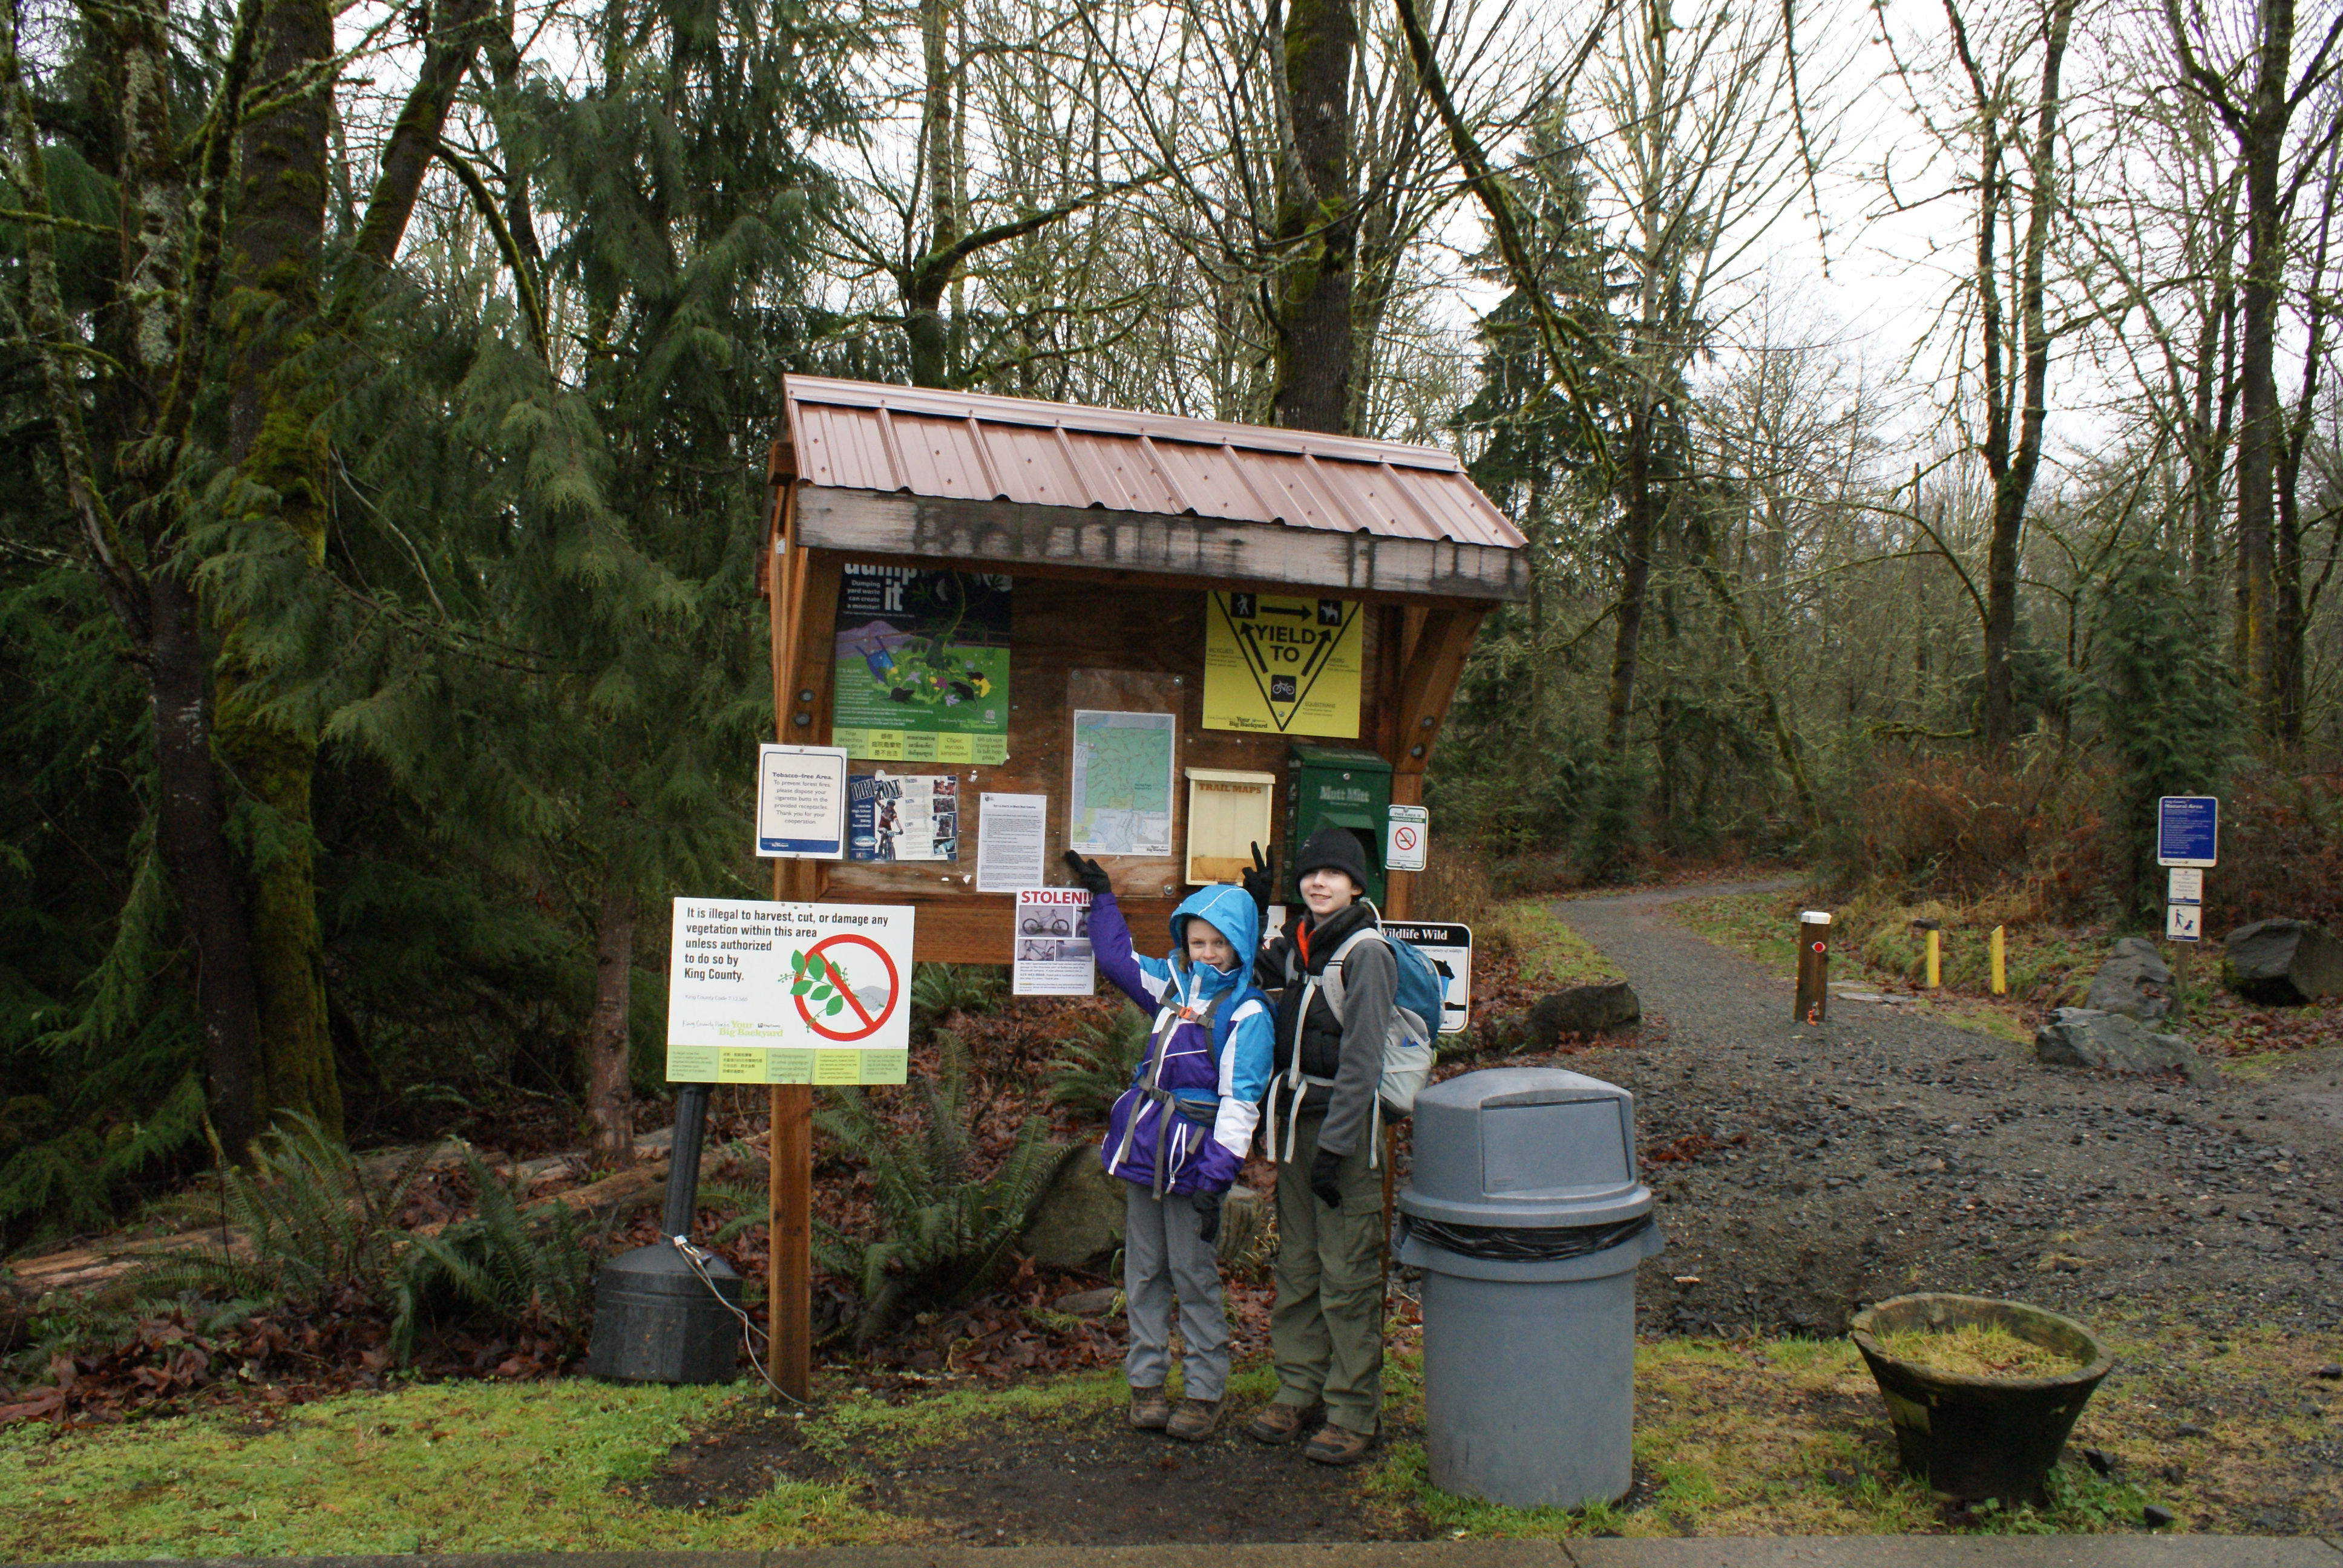 soaring eagle regional park, hiking with kids, winter hiking